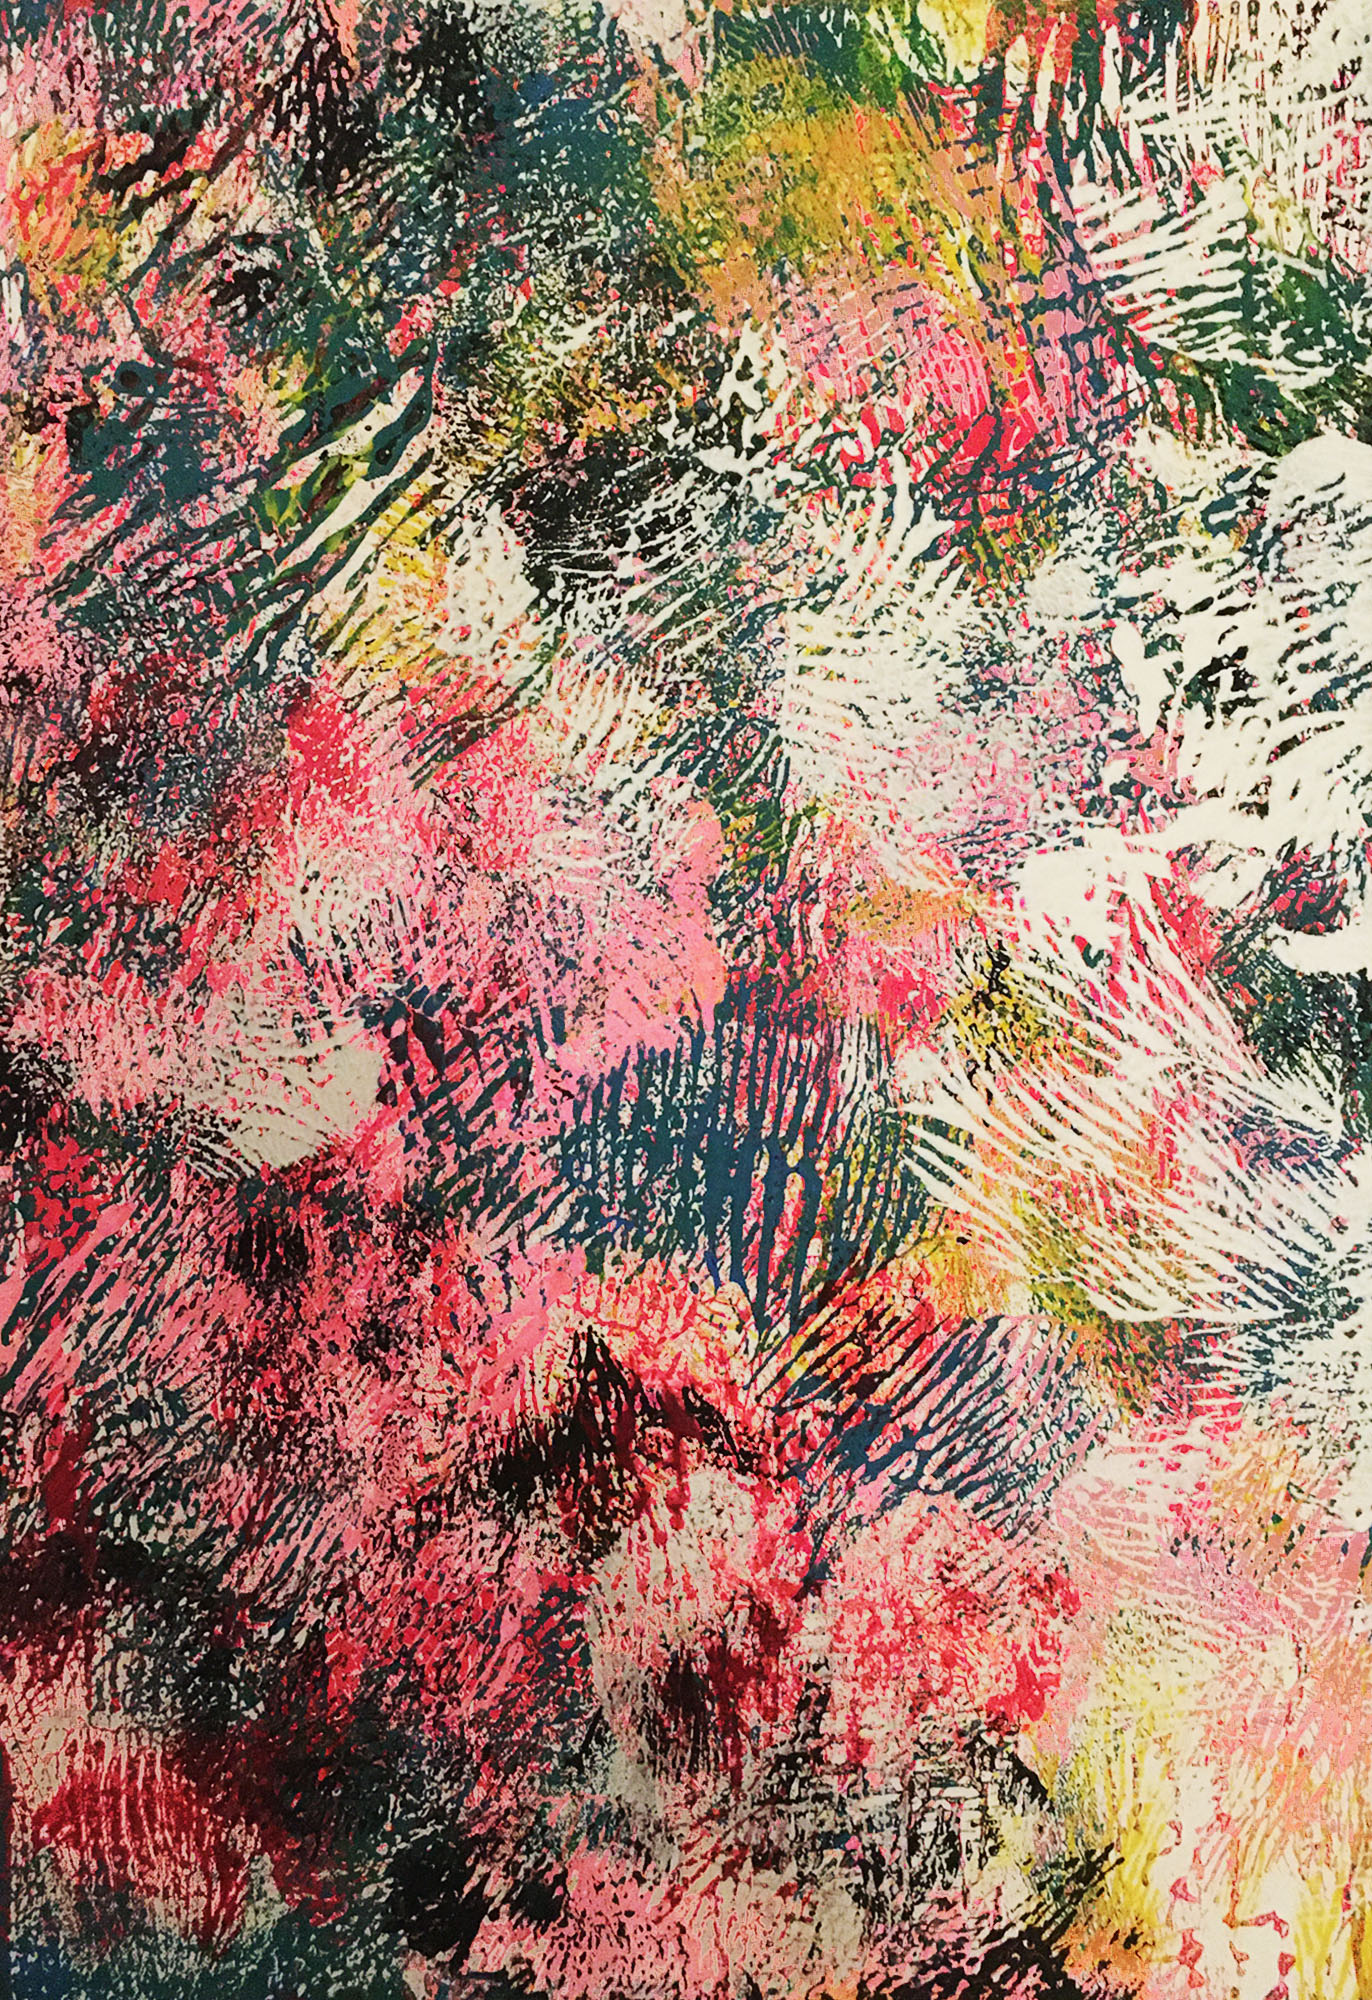 """Abstracts: """"Imprints, IAbstracts: """"Imprints,Spring"""", acrylics on canvas,100x70 cm,2021"""", acrylics on canvas,100x70 cm,2021"""